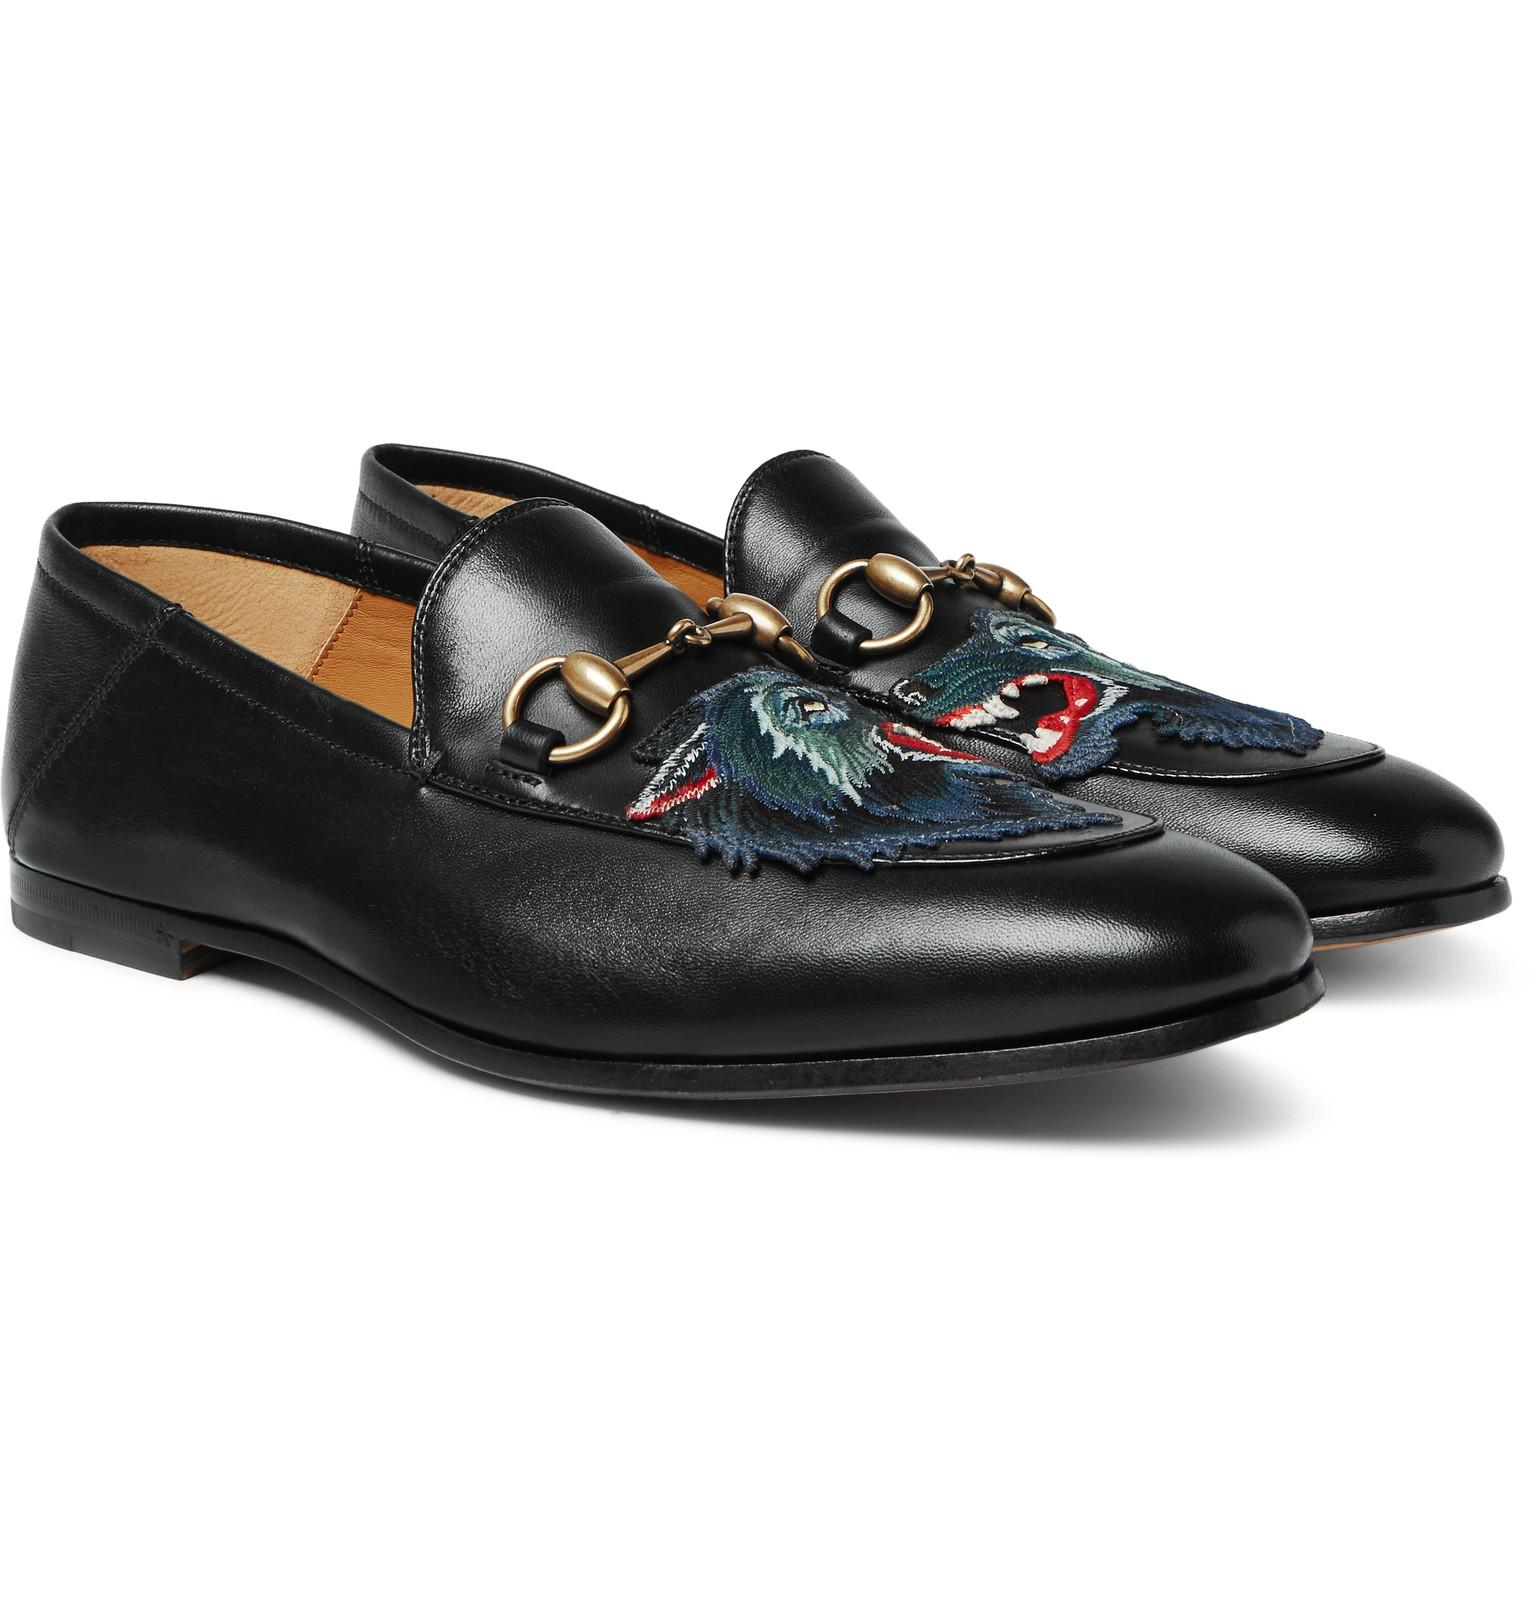 25c4d8944ff Gucci. Men s Black Brixton Horsebit Collapsible-heel Appliquéd Leather  Loafers